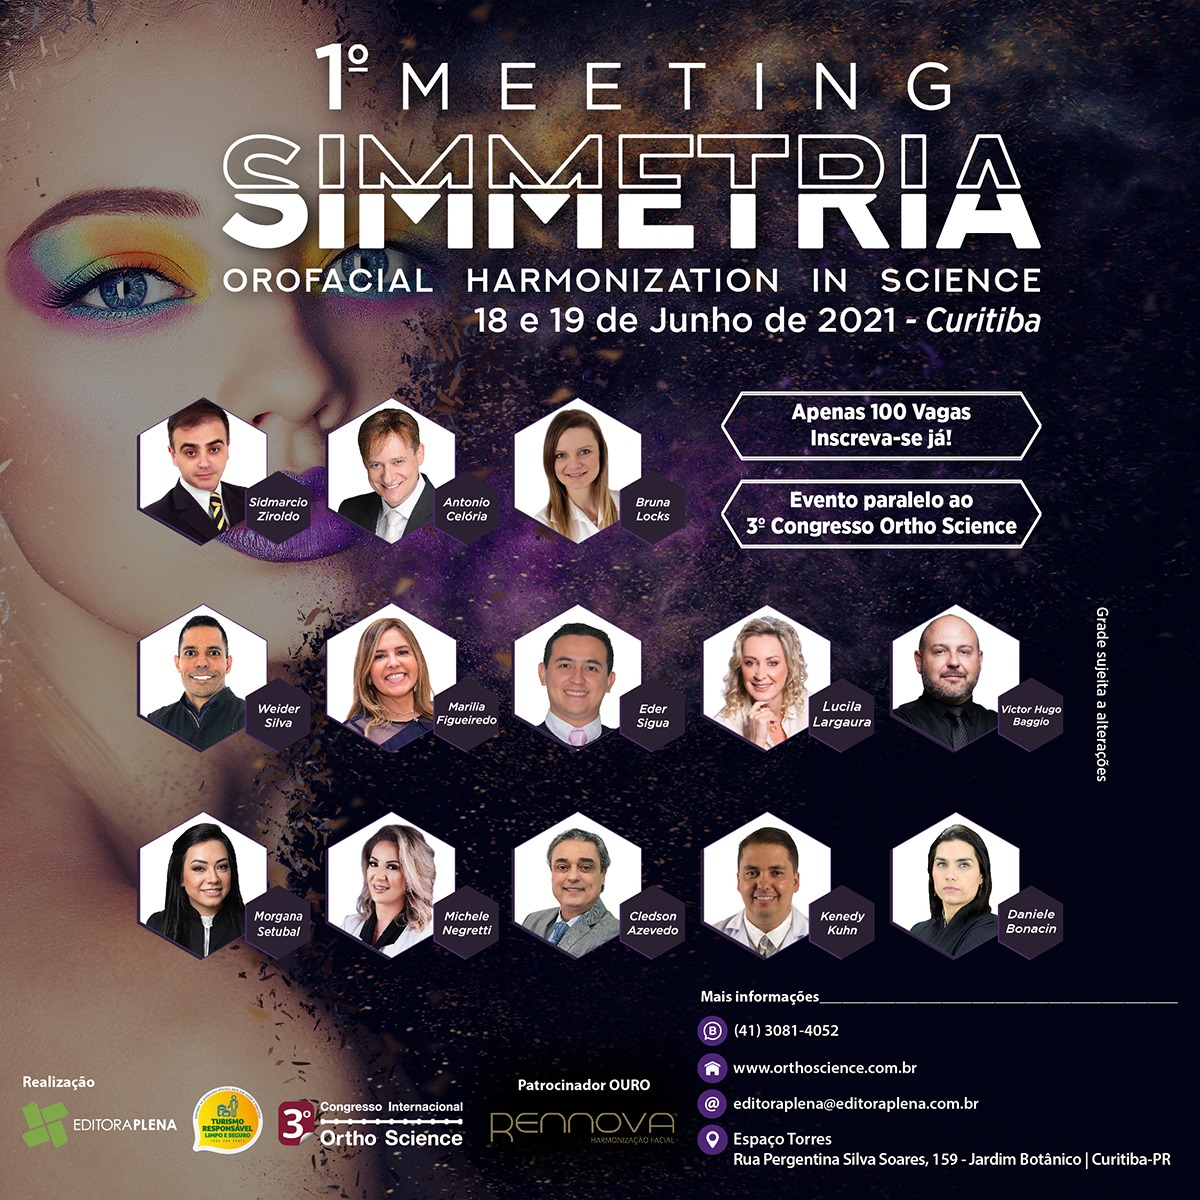 1° Meeting Simmetria Orofacial Harmonization In Science